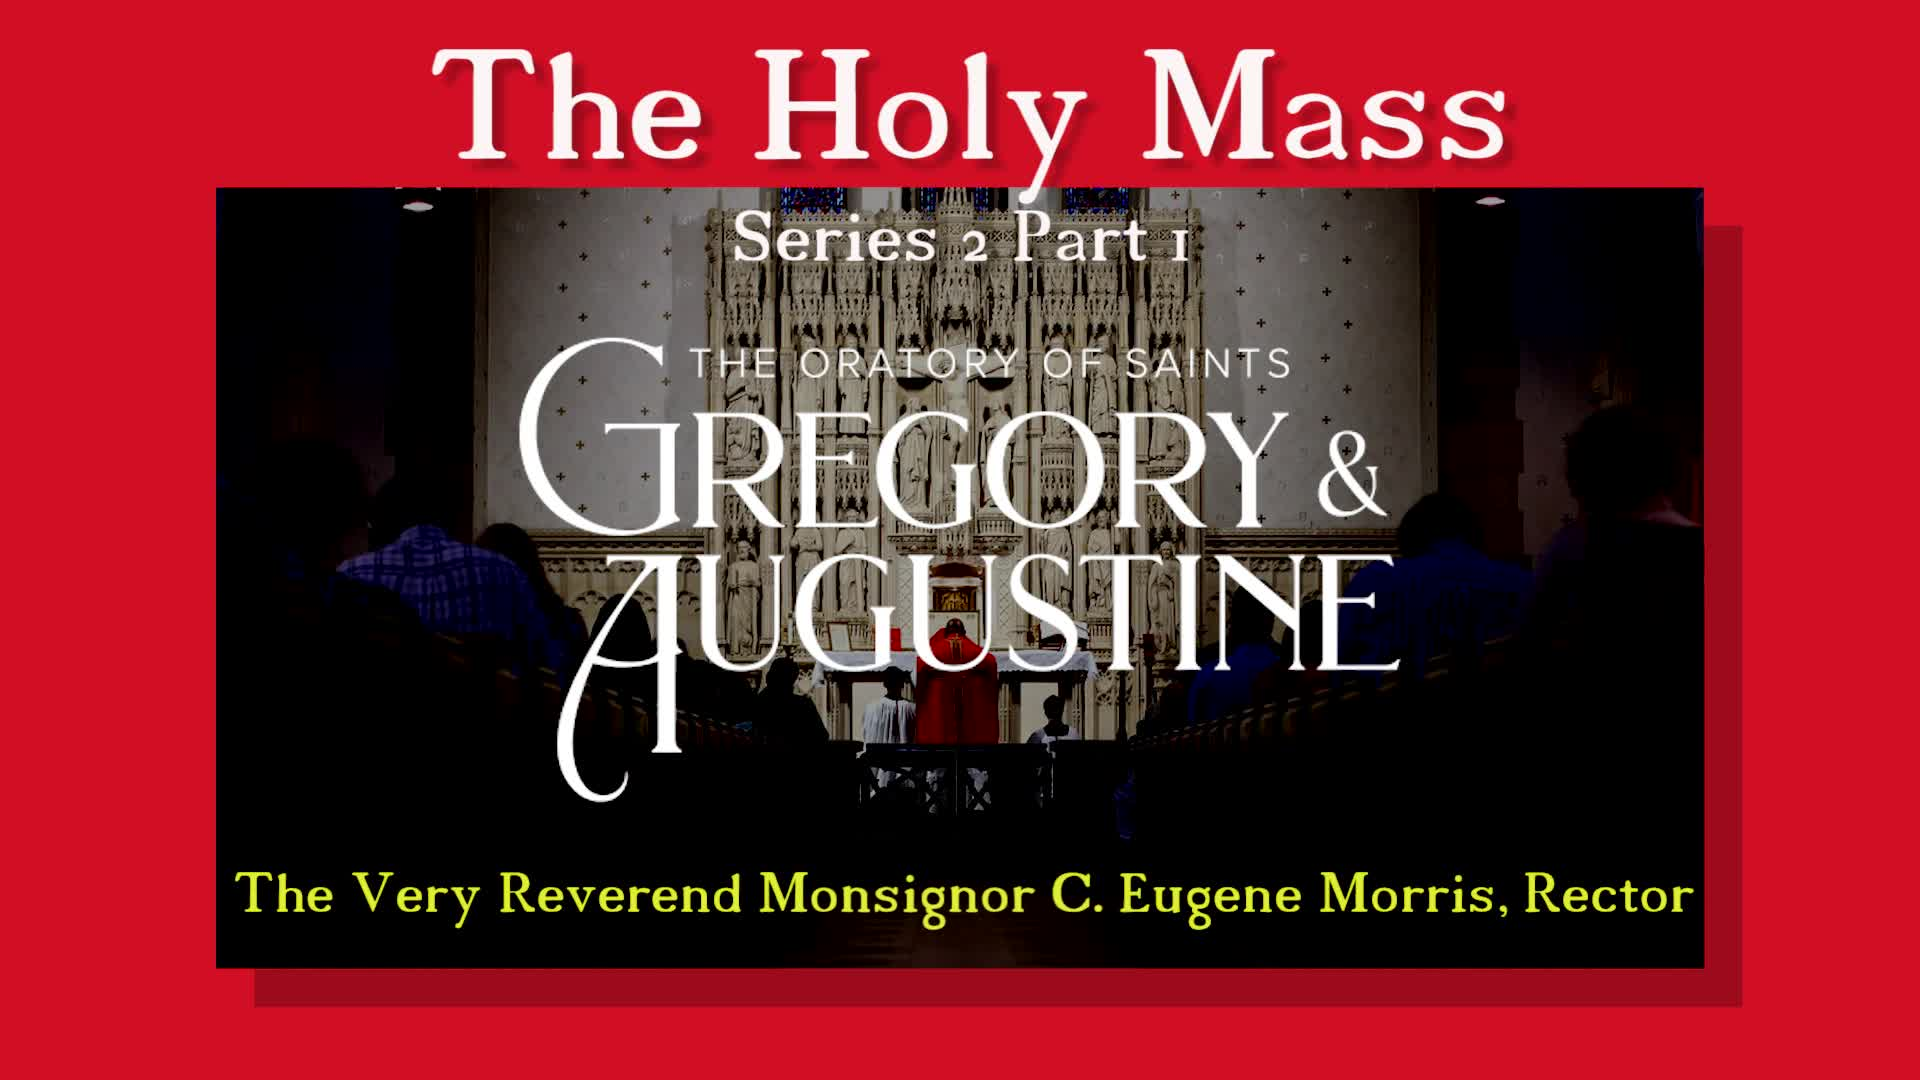 The Holy Mass Series 2 - Part 1